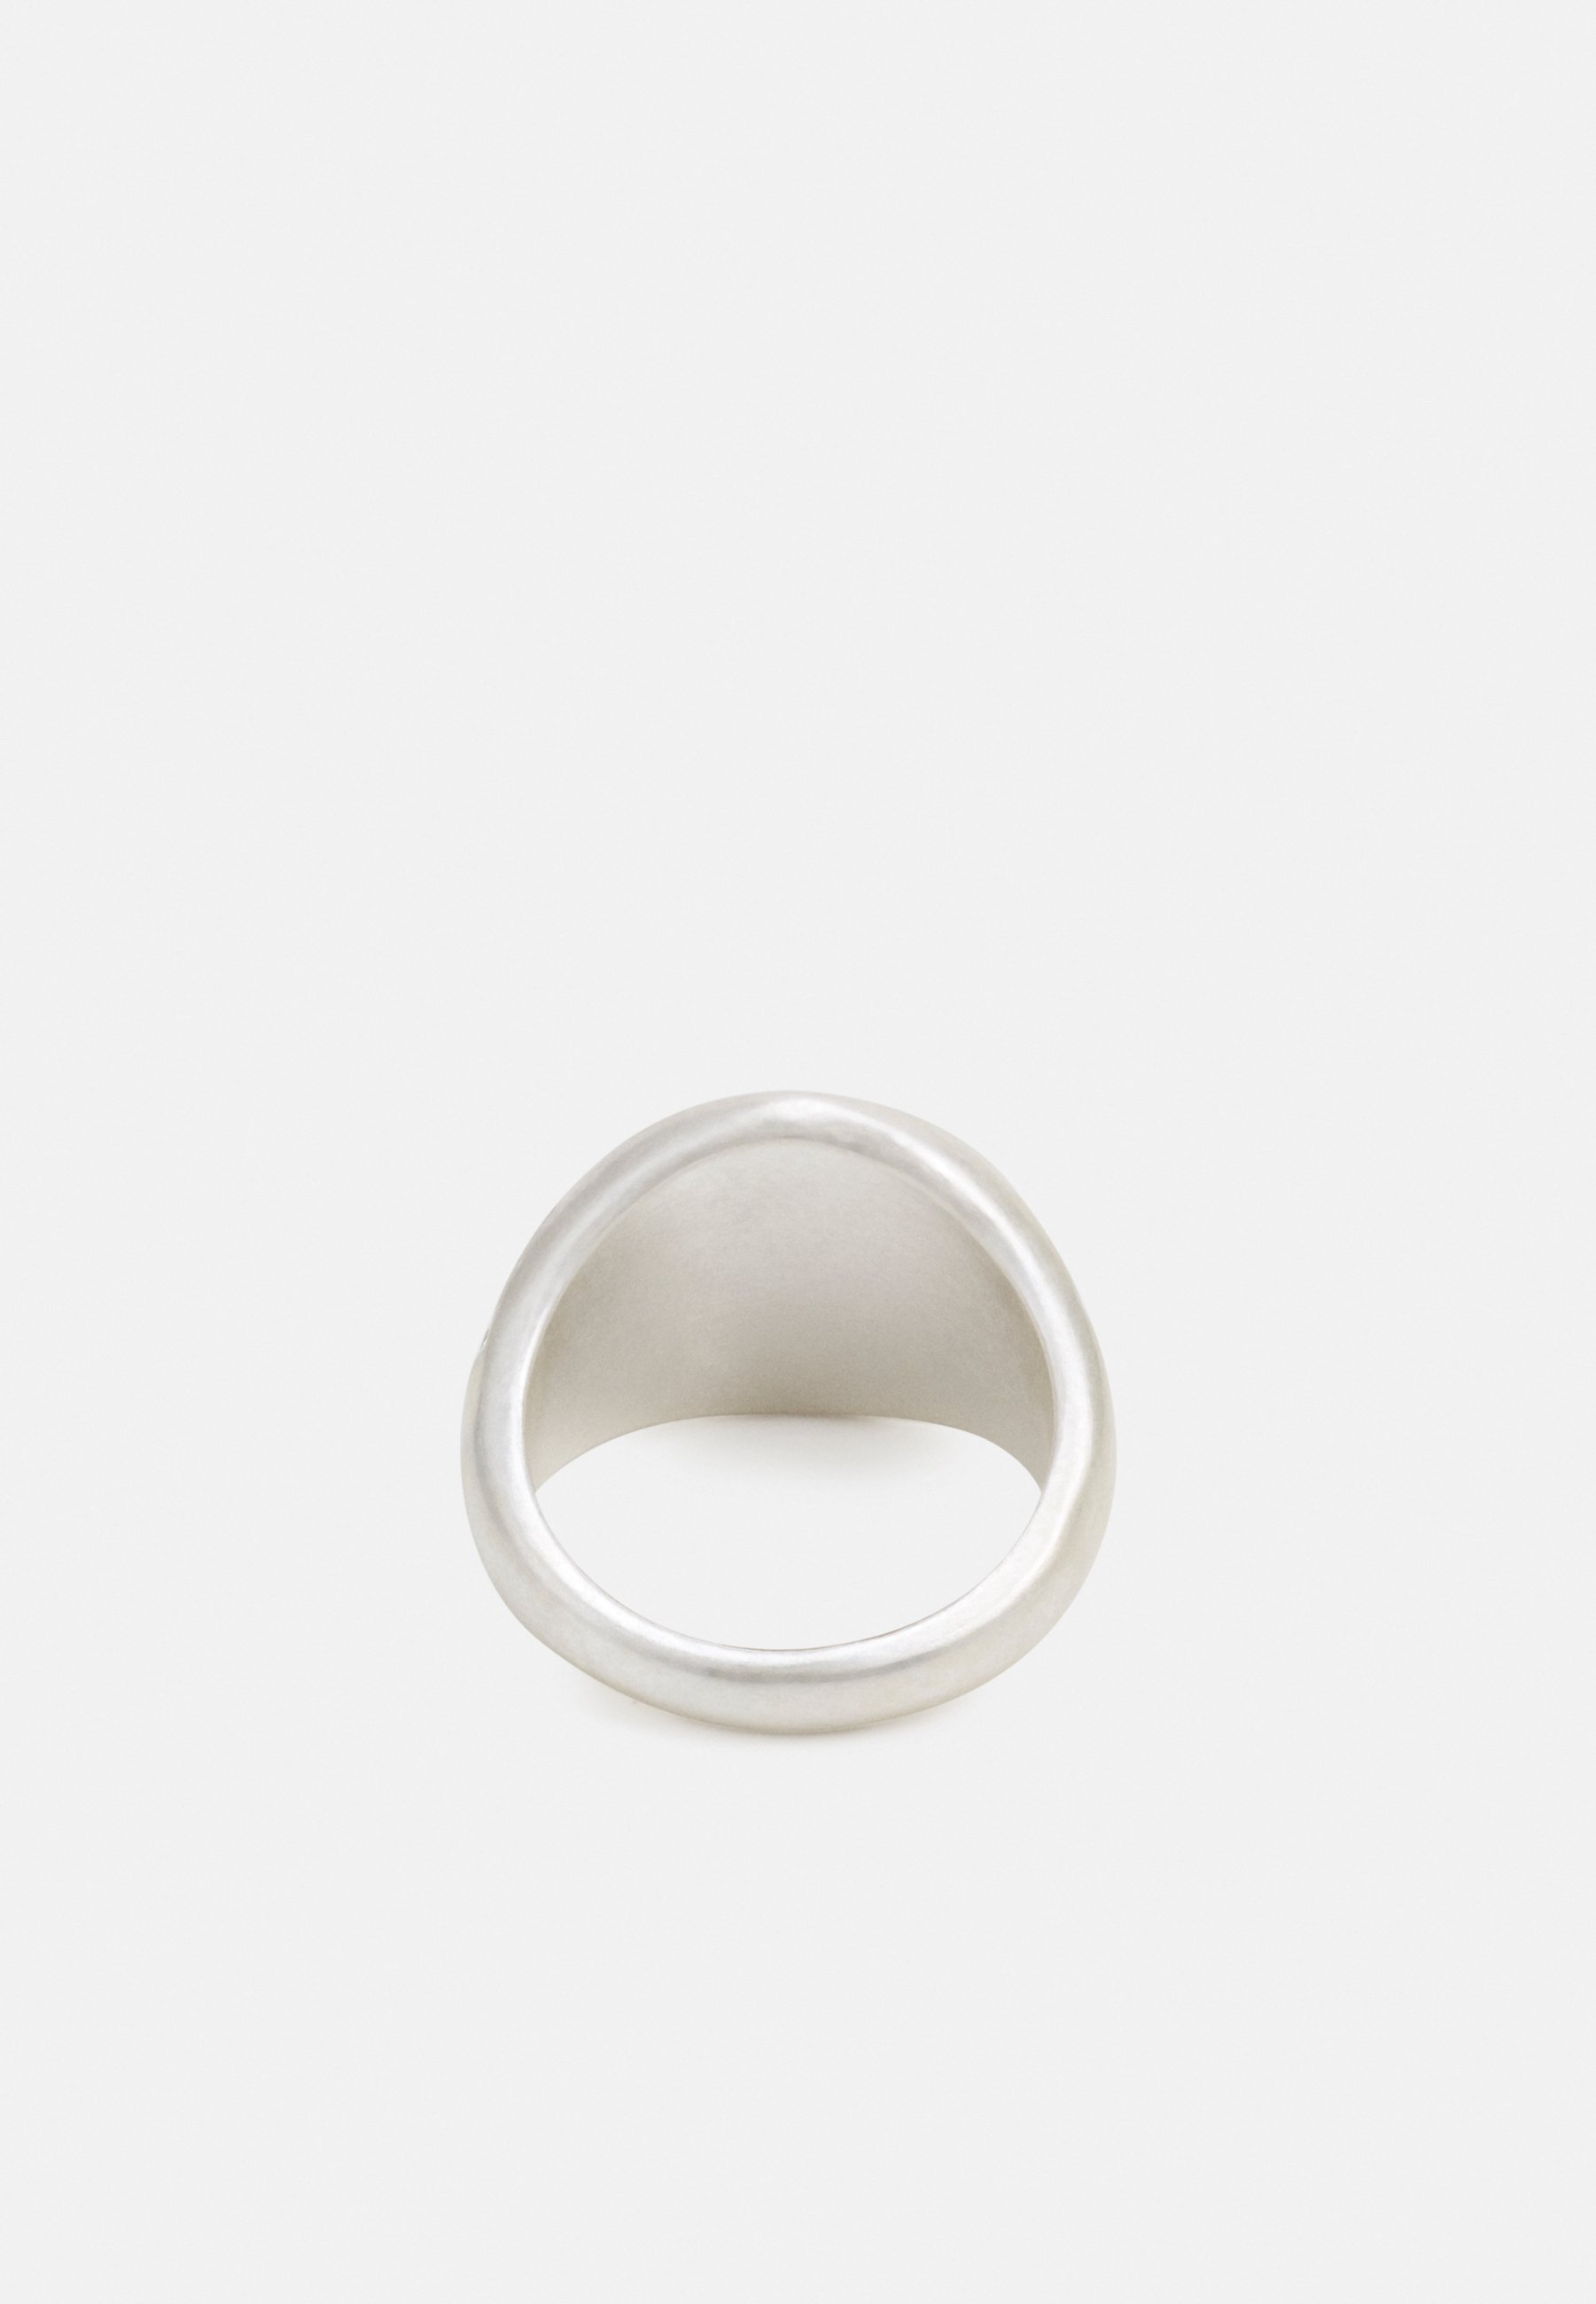 Homme MILITARY PRECISION ID SIGNET - Bague